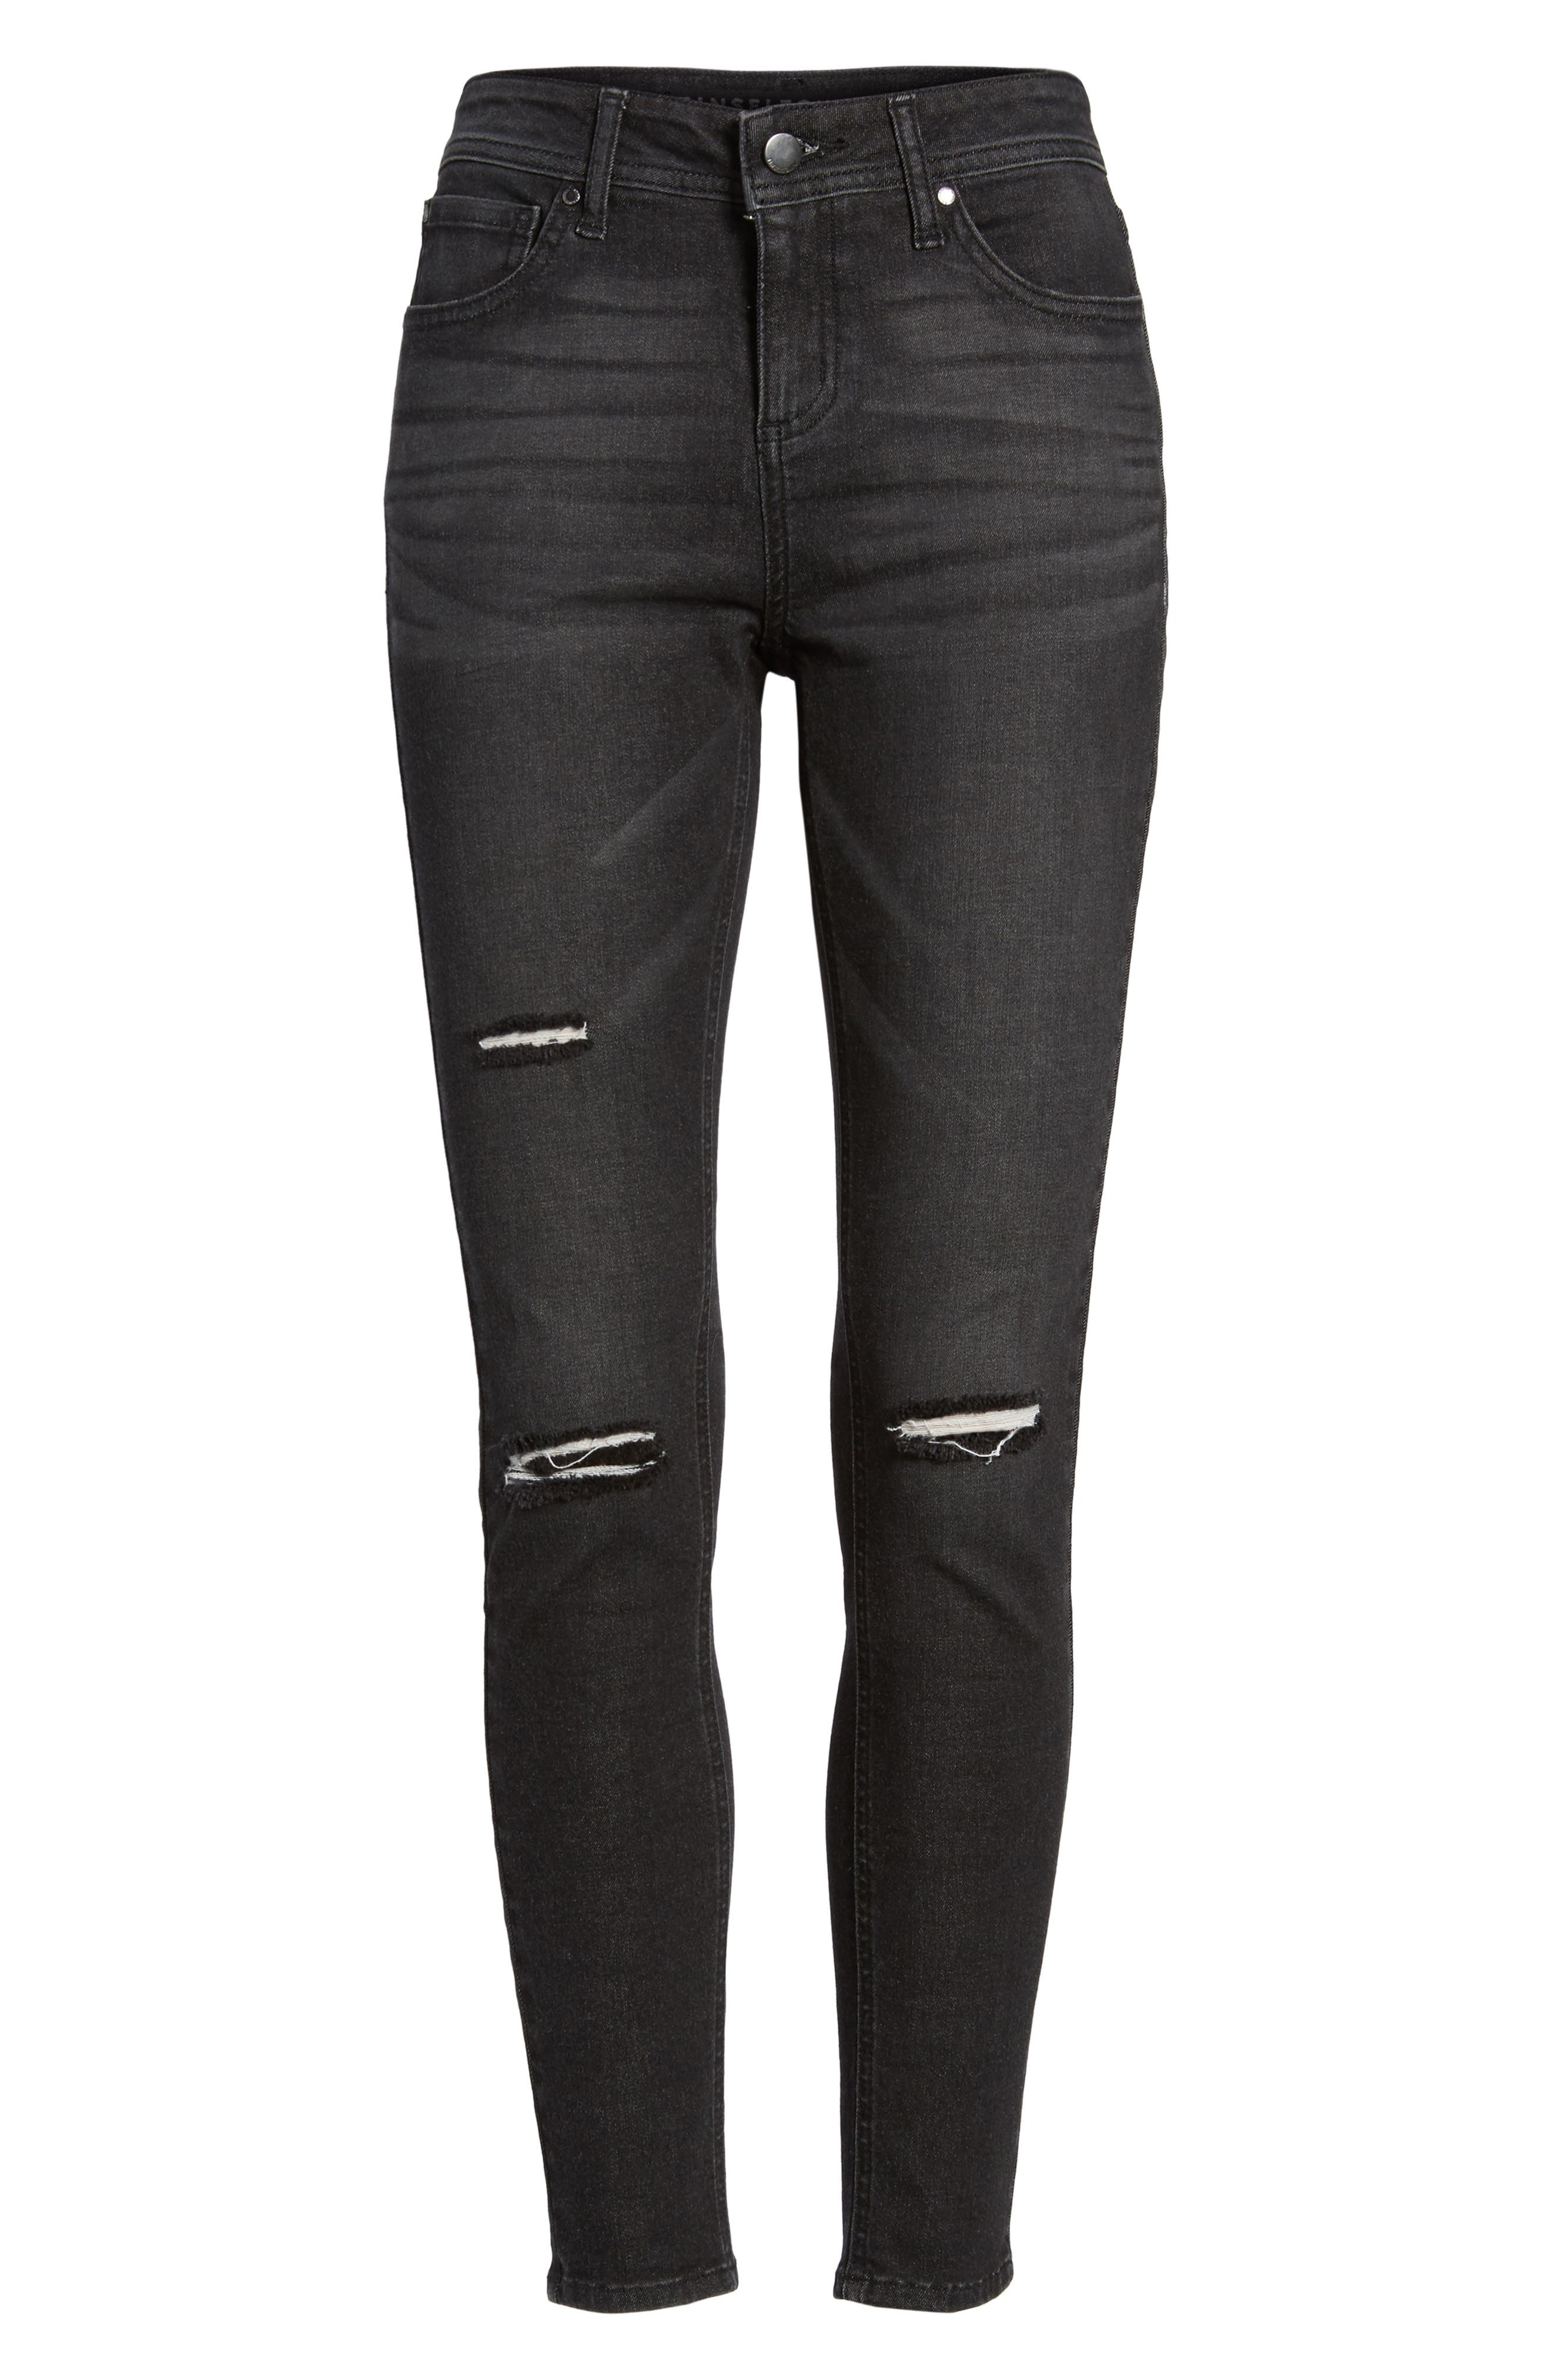 Ripped Skinny Jeans,                             Alternate thumbnail 6, color,                             001